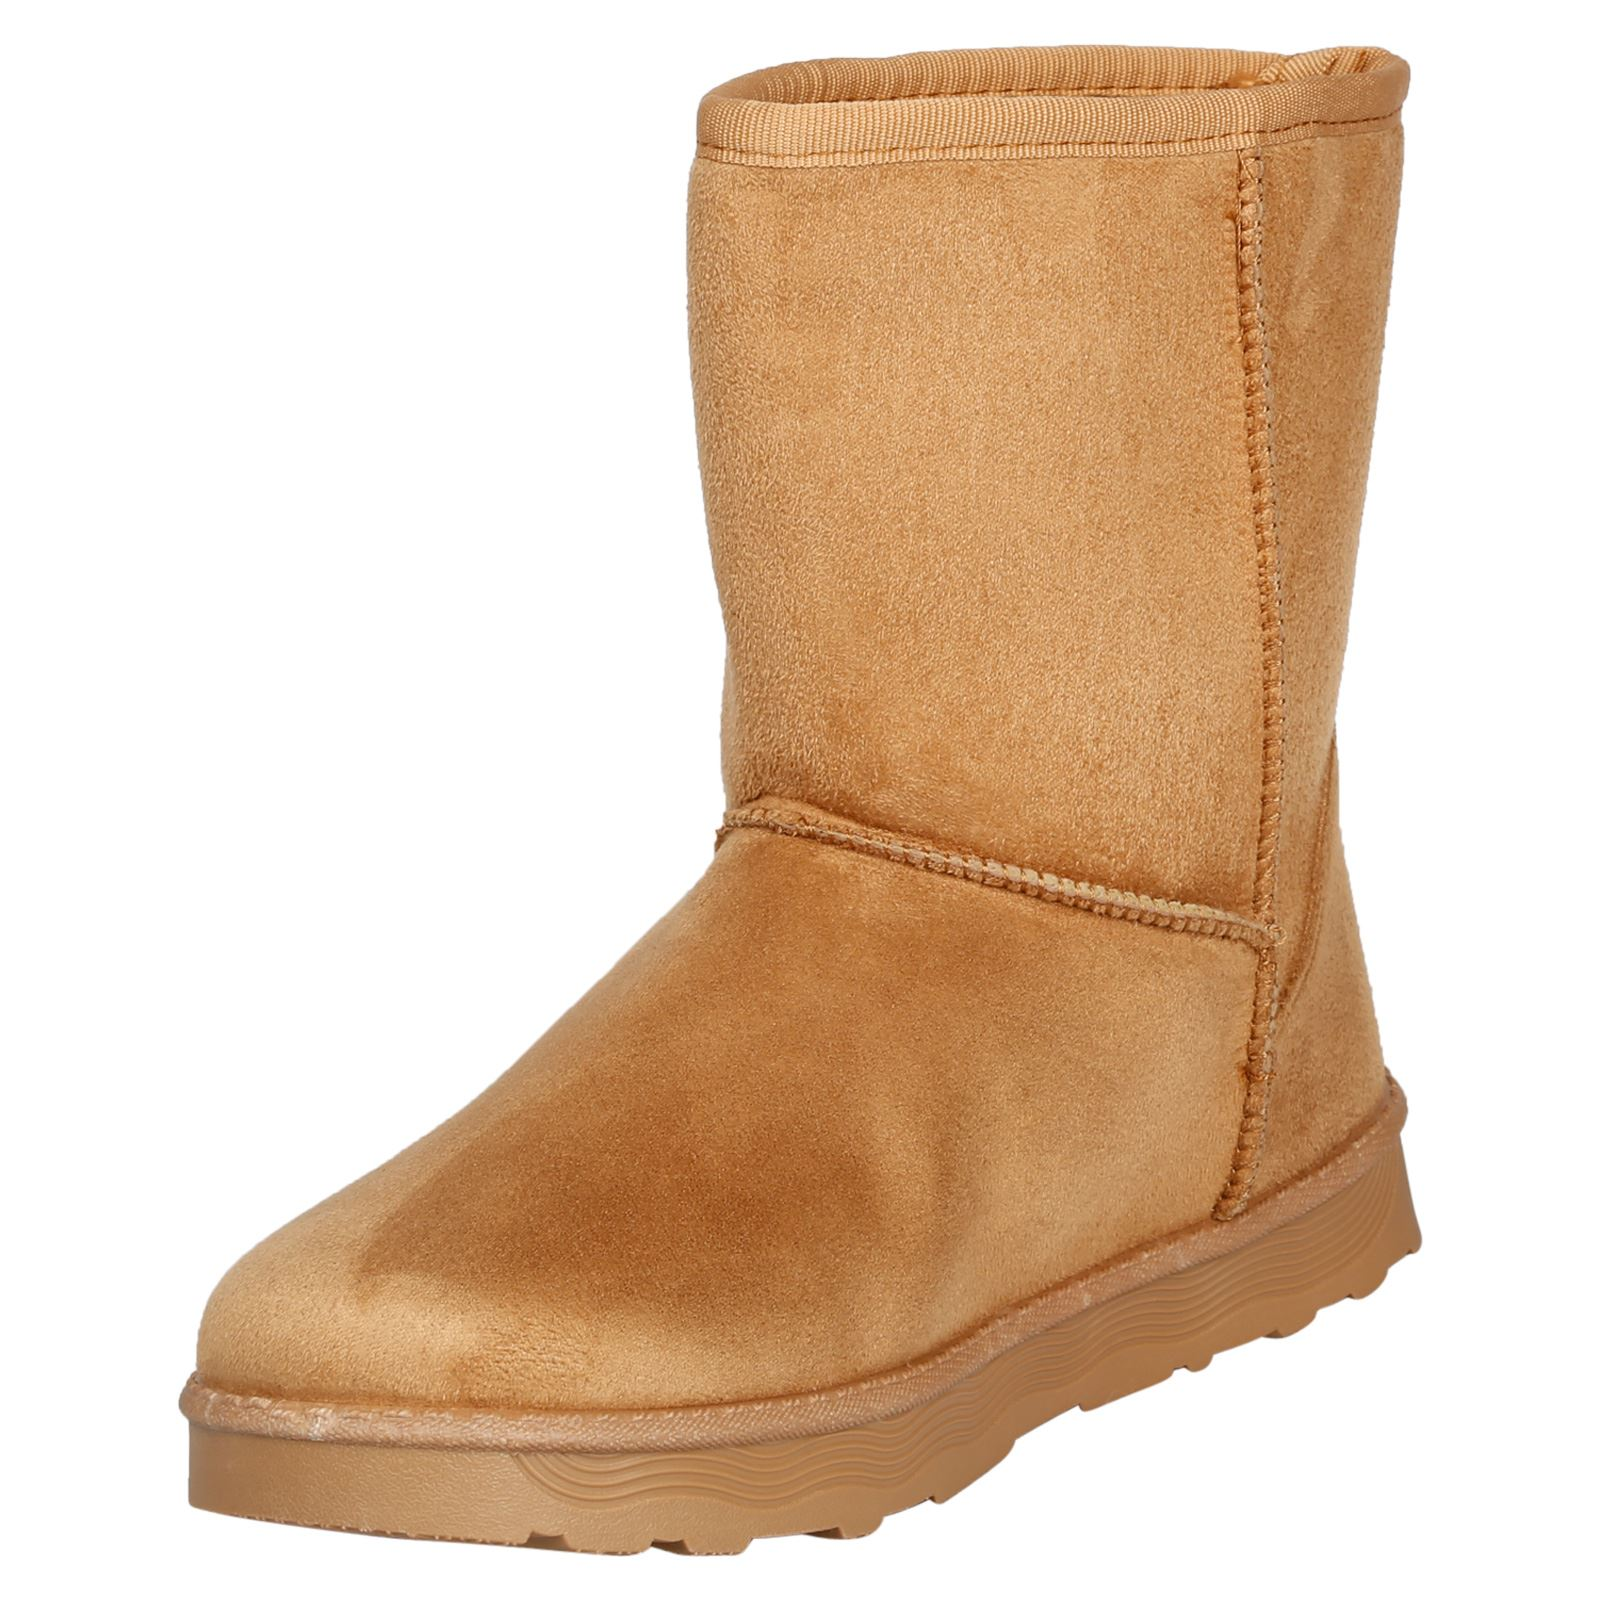 Paisleigh-Womens-Platfrom-Flat-Fur-Lined-Pull-On-Snug-Snow-Boots-Casual-Ladies thumbnail 8